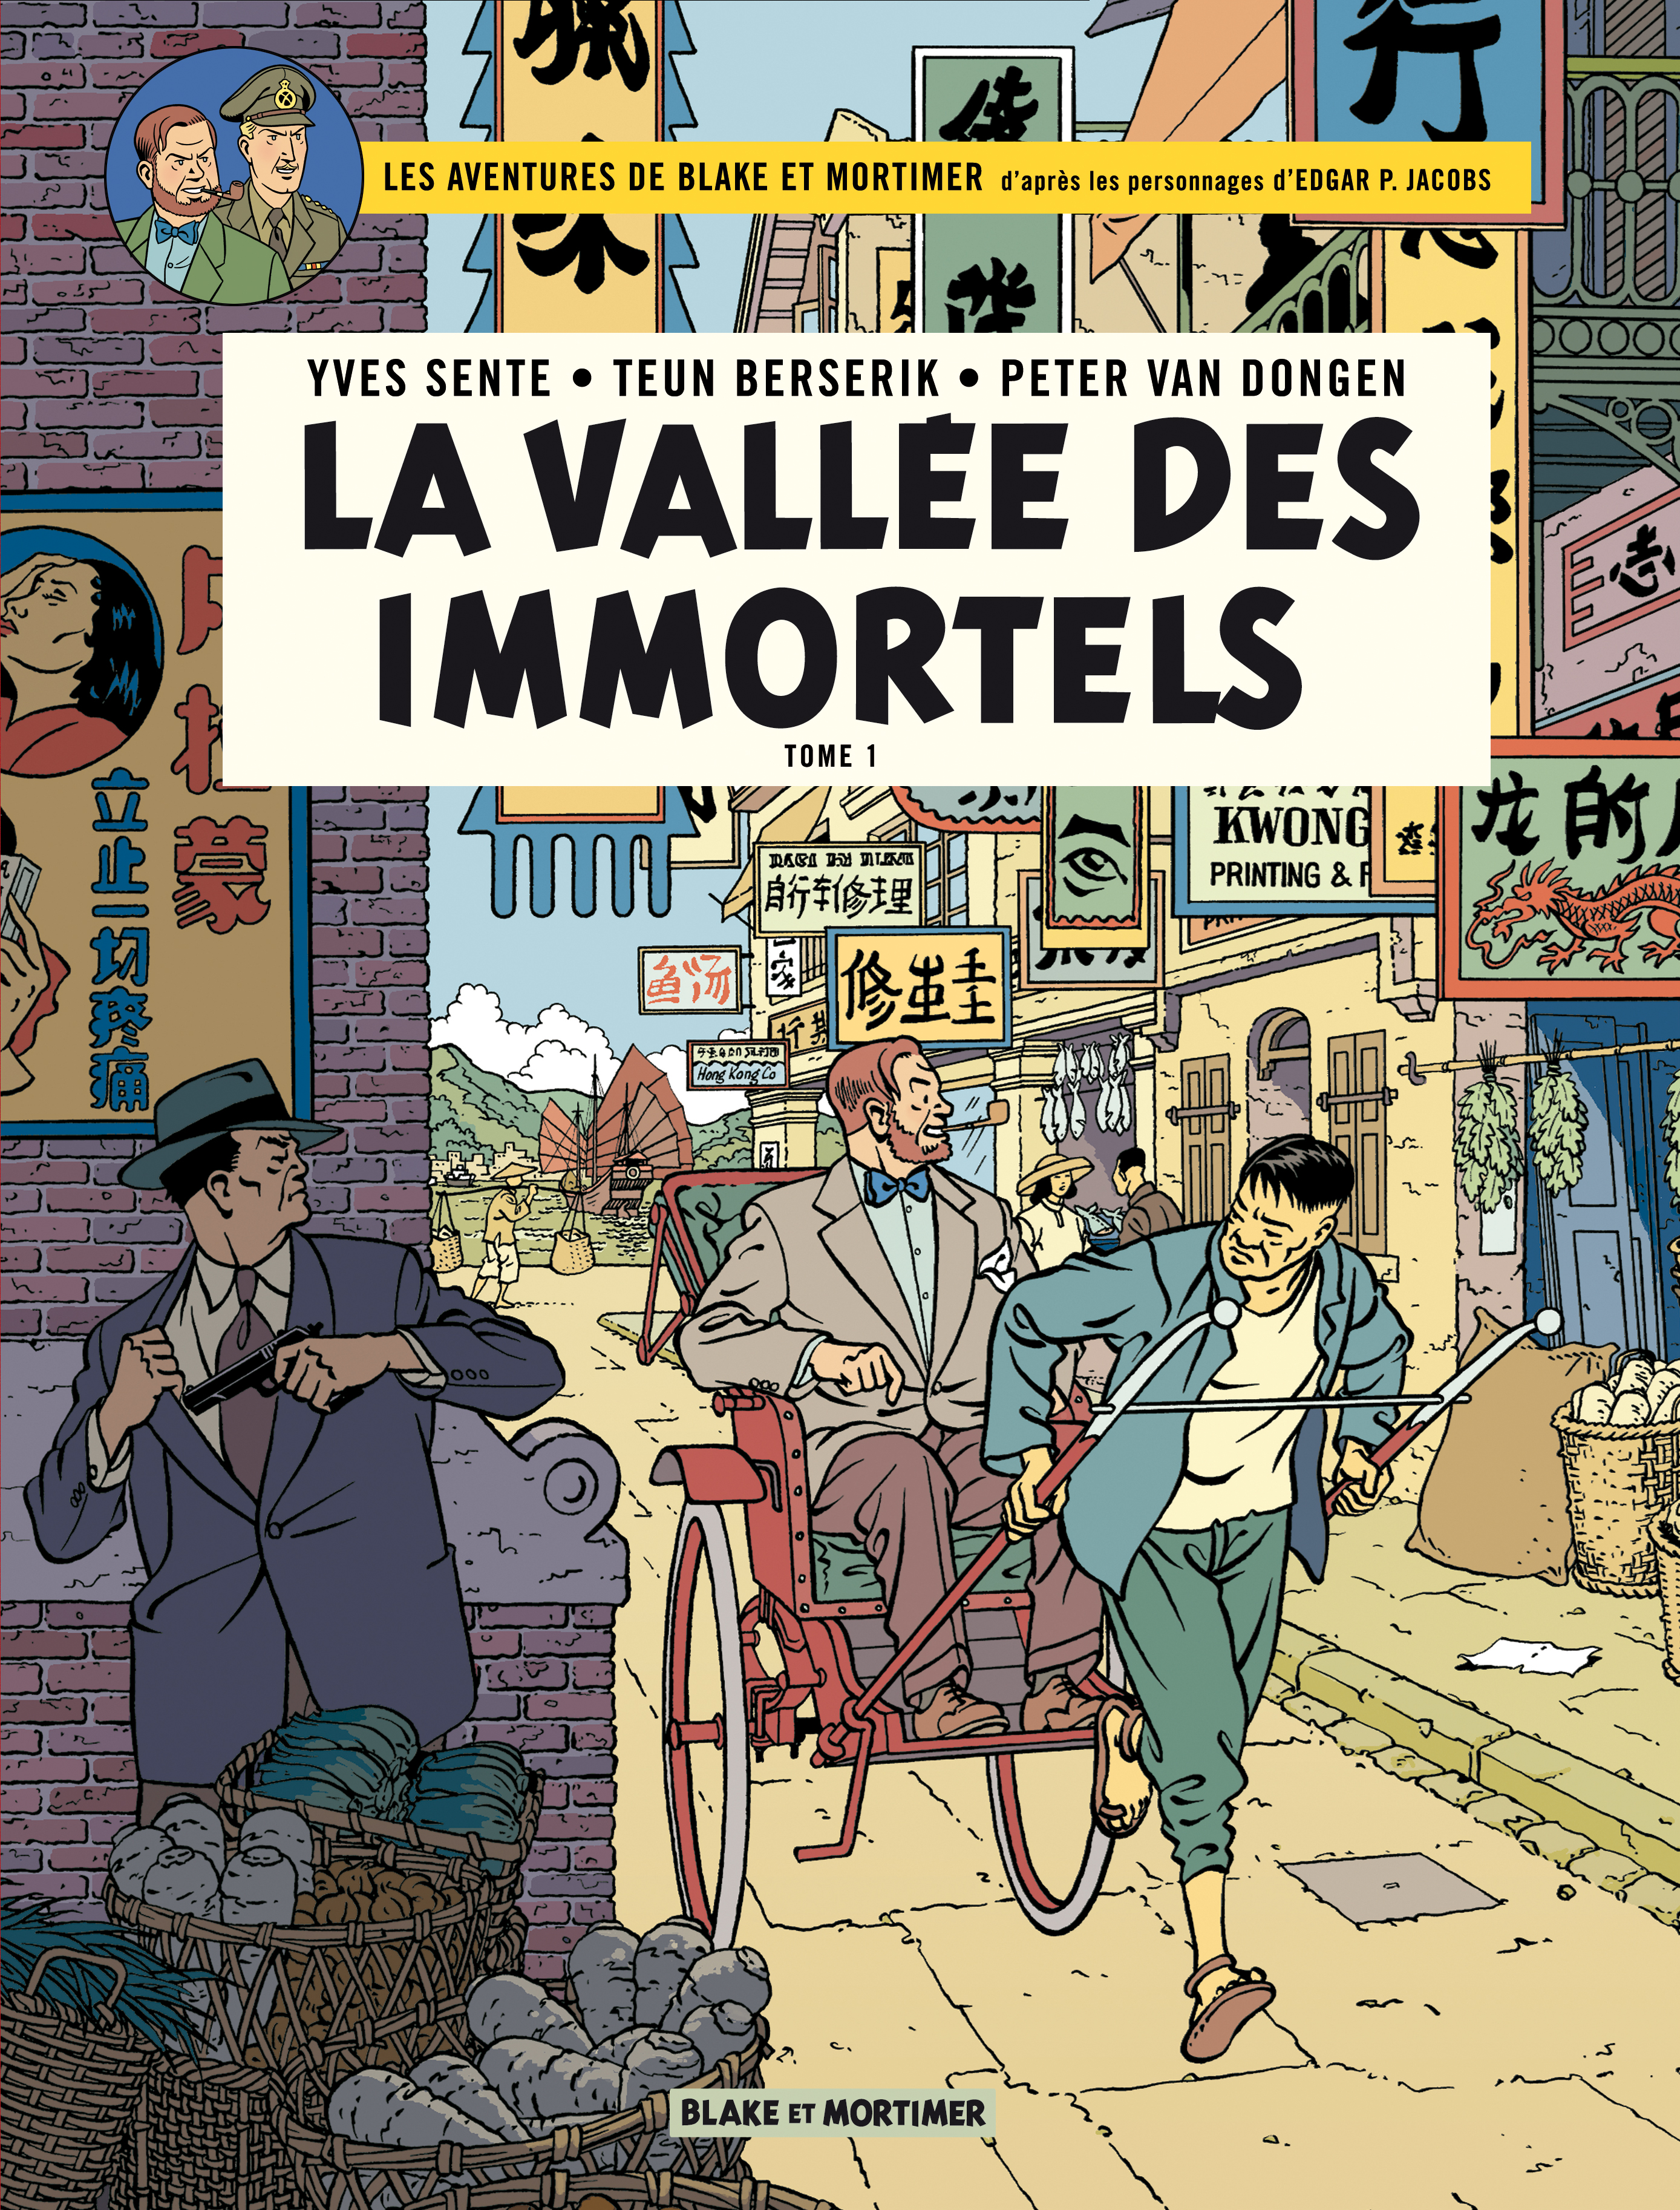 Blake et Mortimer. La vallée des immortels T.25 : Menace sur Hong, Peter van Dongen